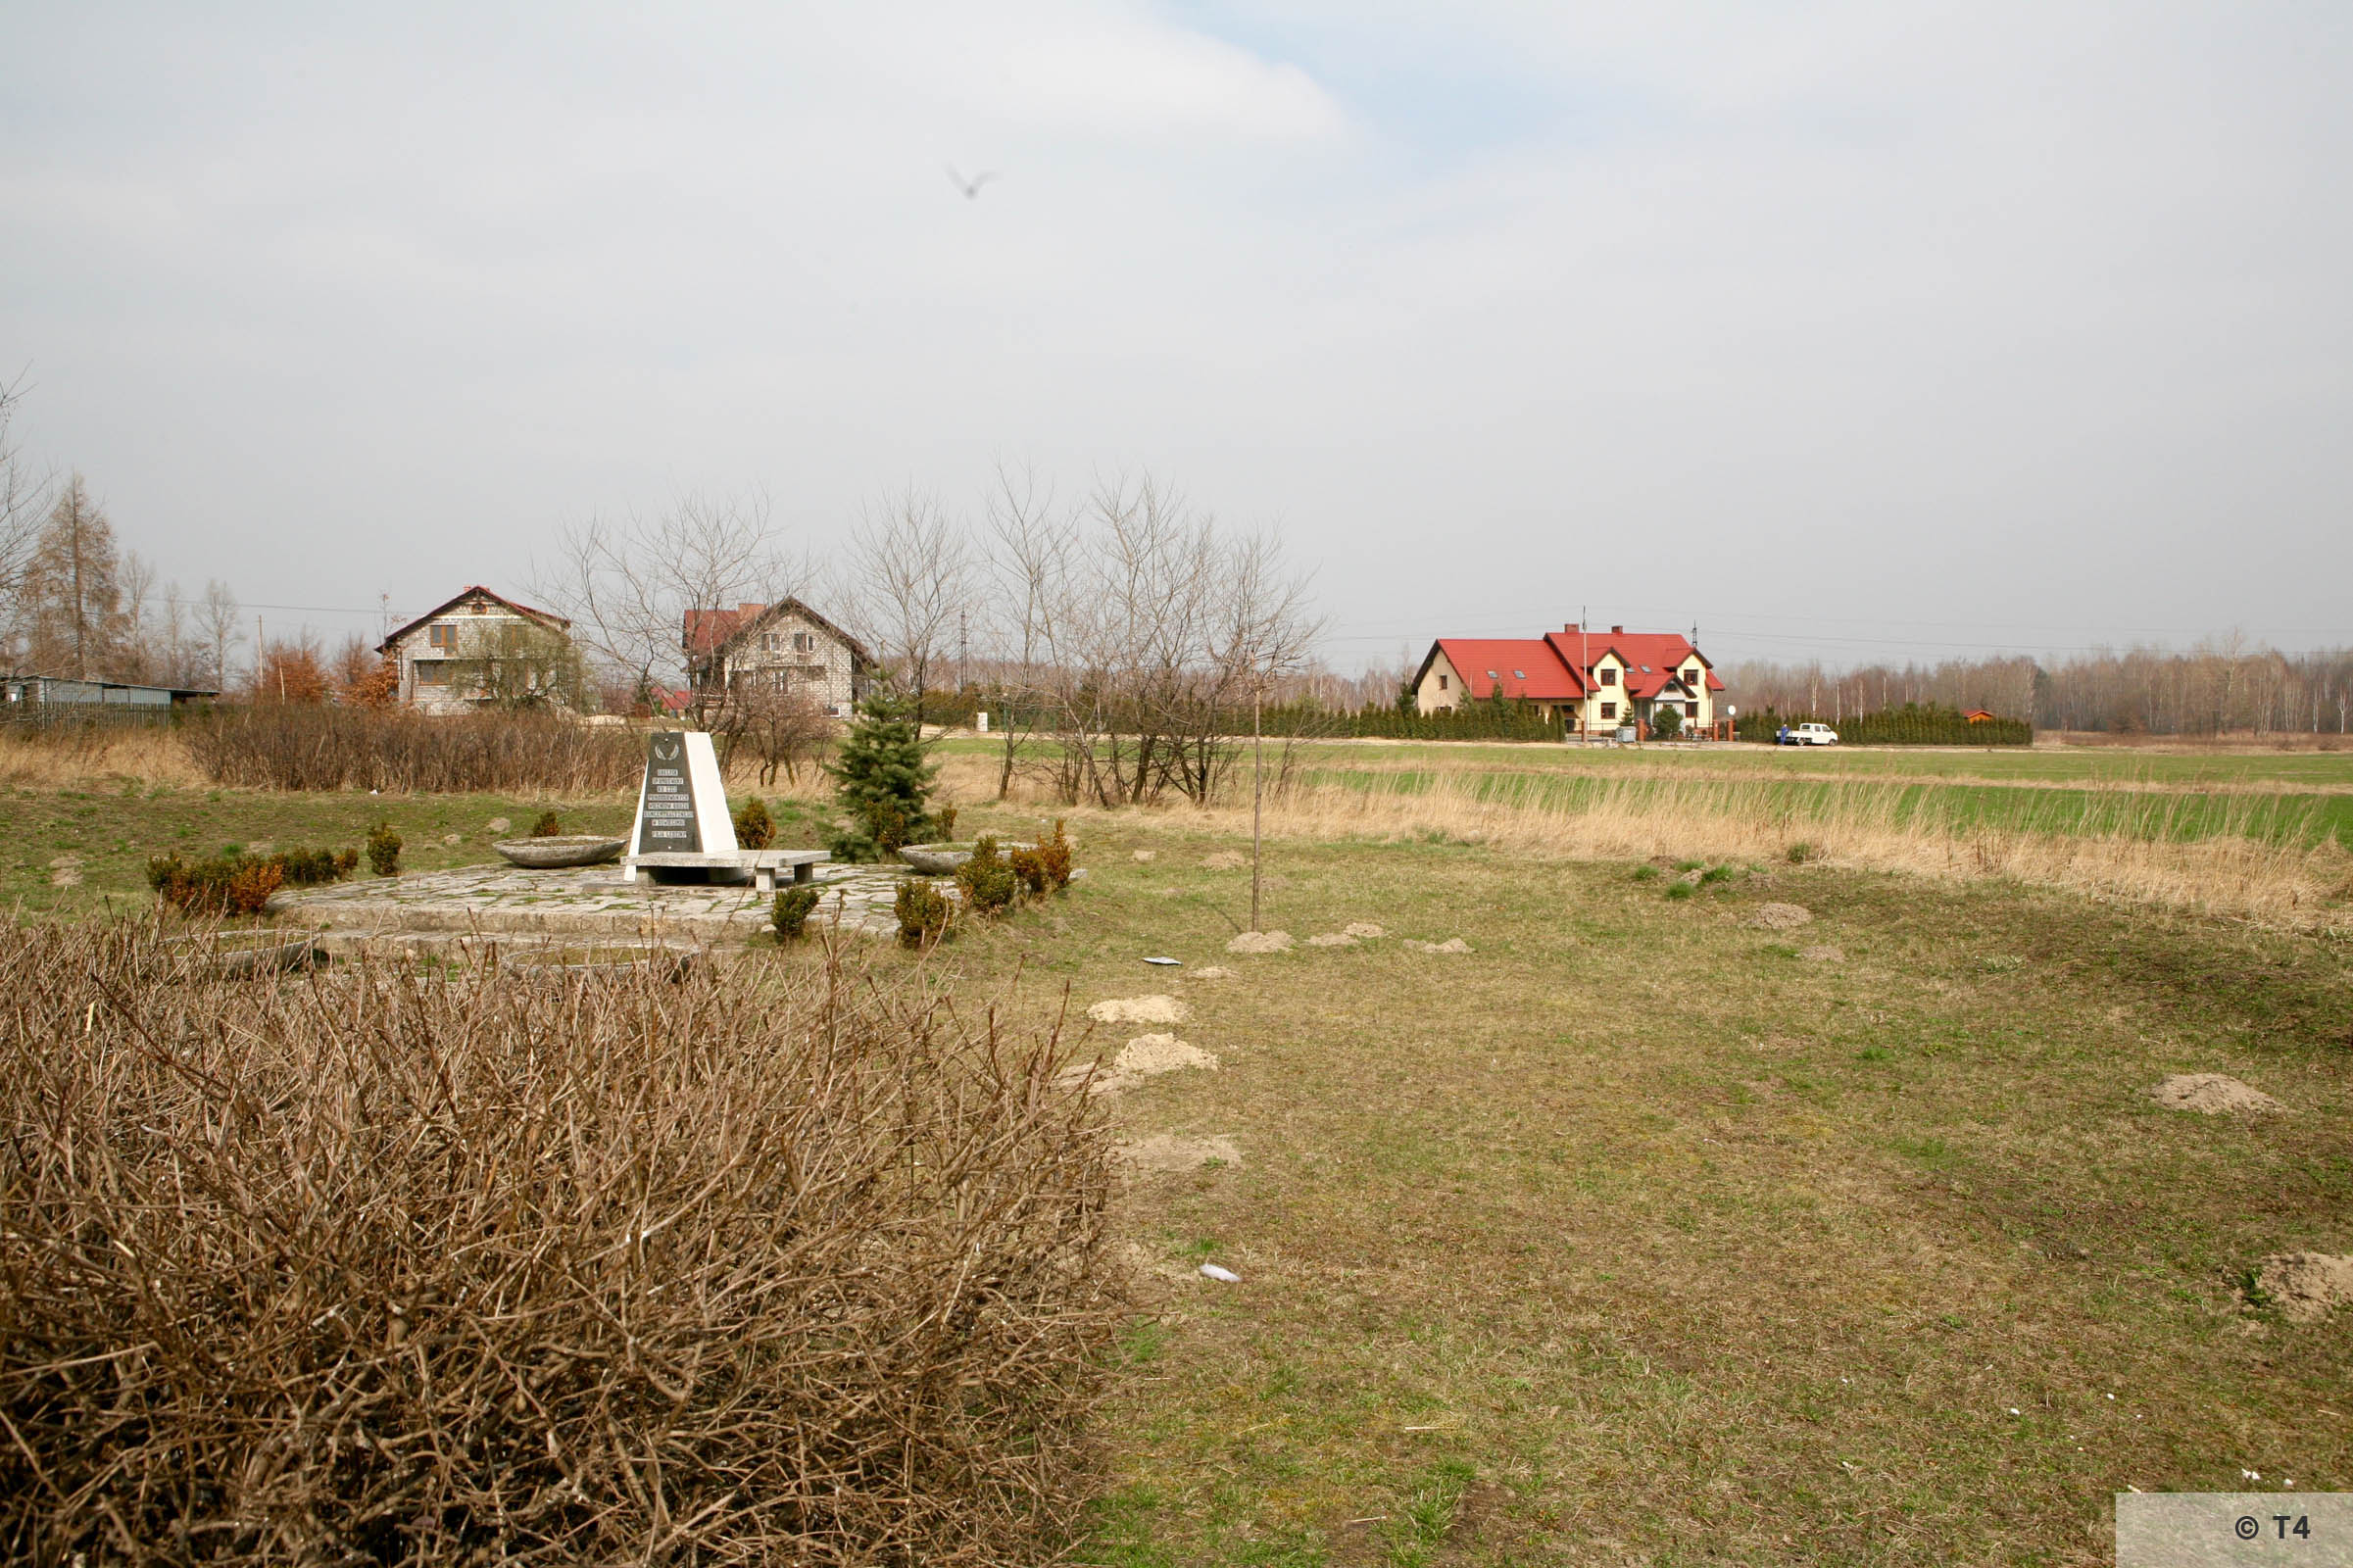 Memorial on the area of former Lager Heimat. 2006 T4 3307